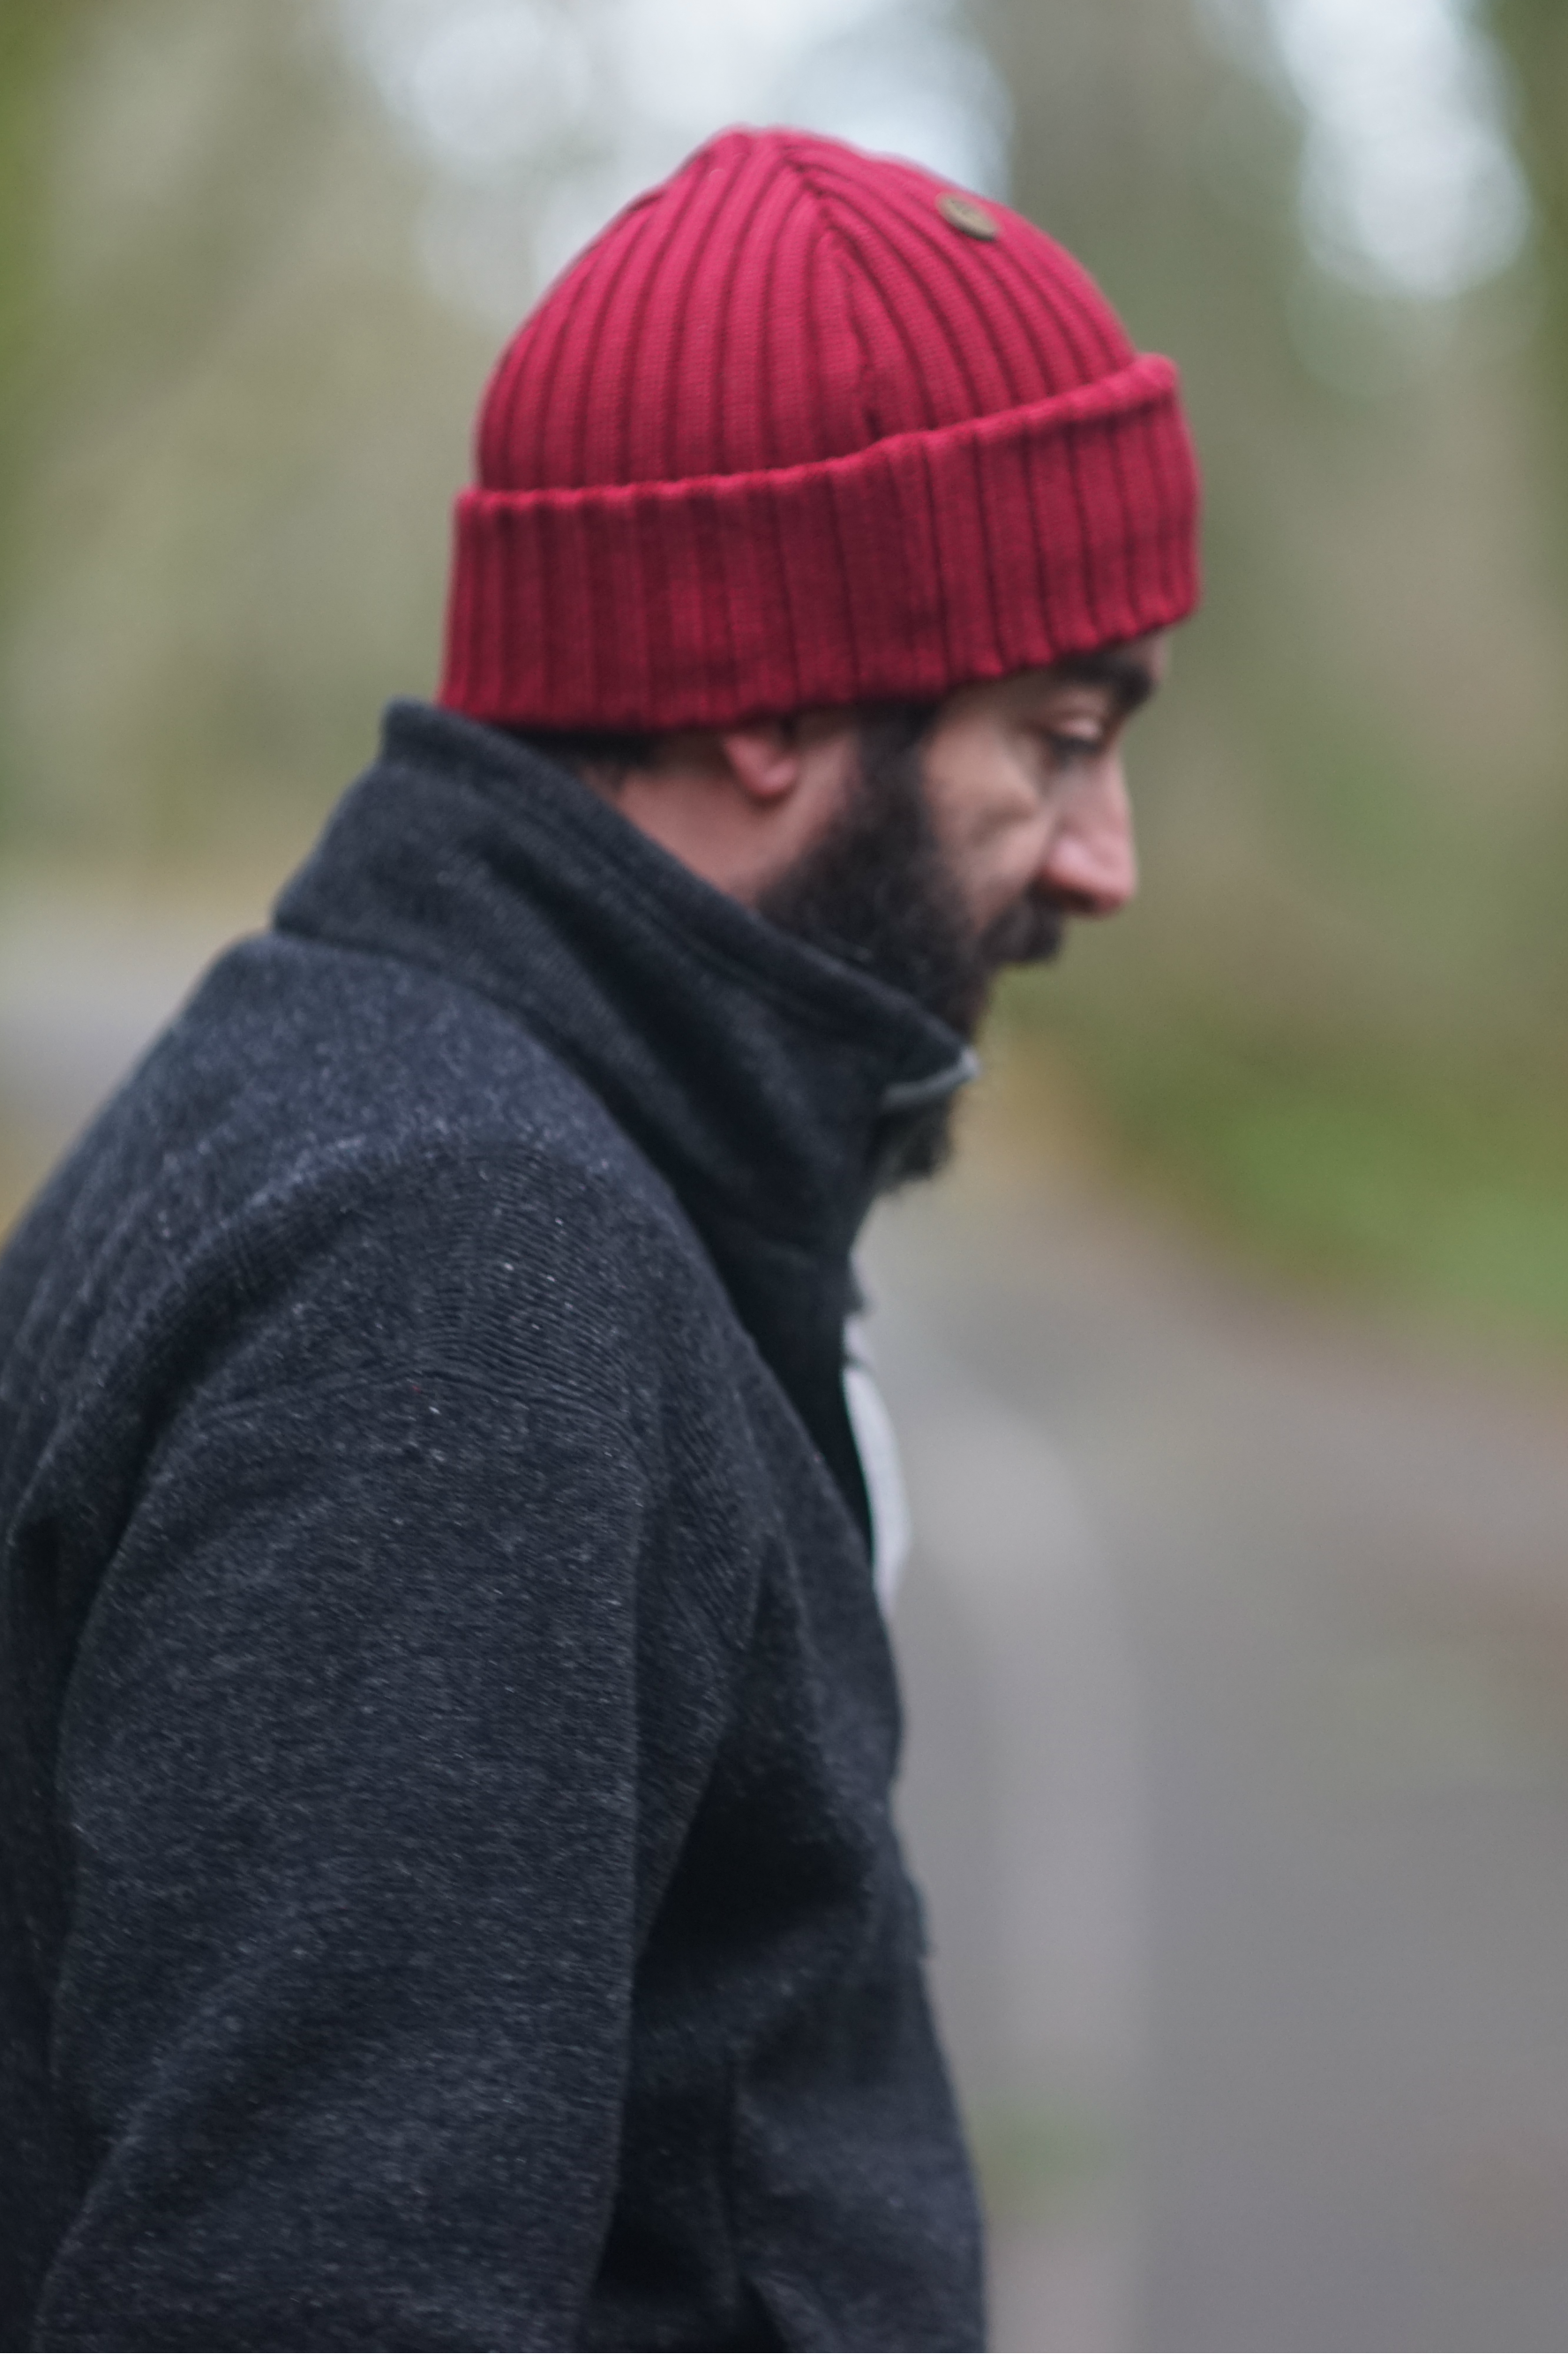 4d37a9f2a9e Hipster hiking outfit for Men. Red merino wool beanie outfit for Fall.  Beanie by VAI-KO. Photo and model  secretagentmike    lindseynaglieri